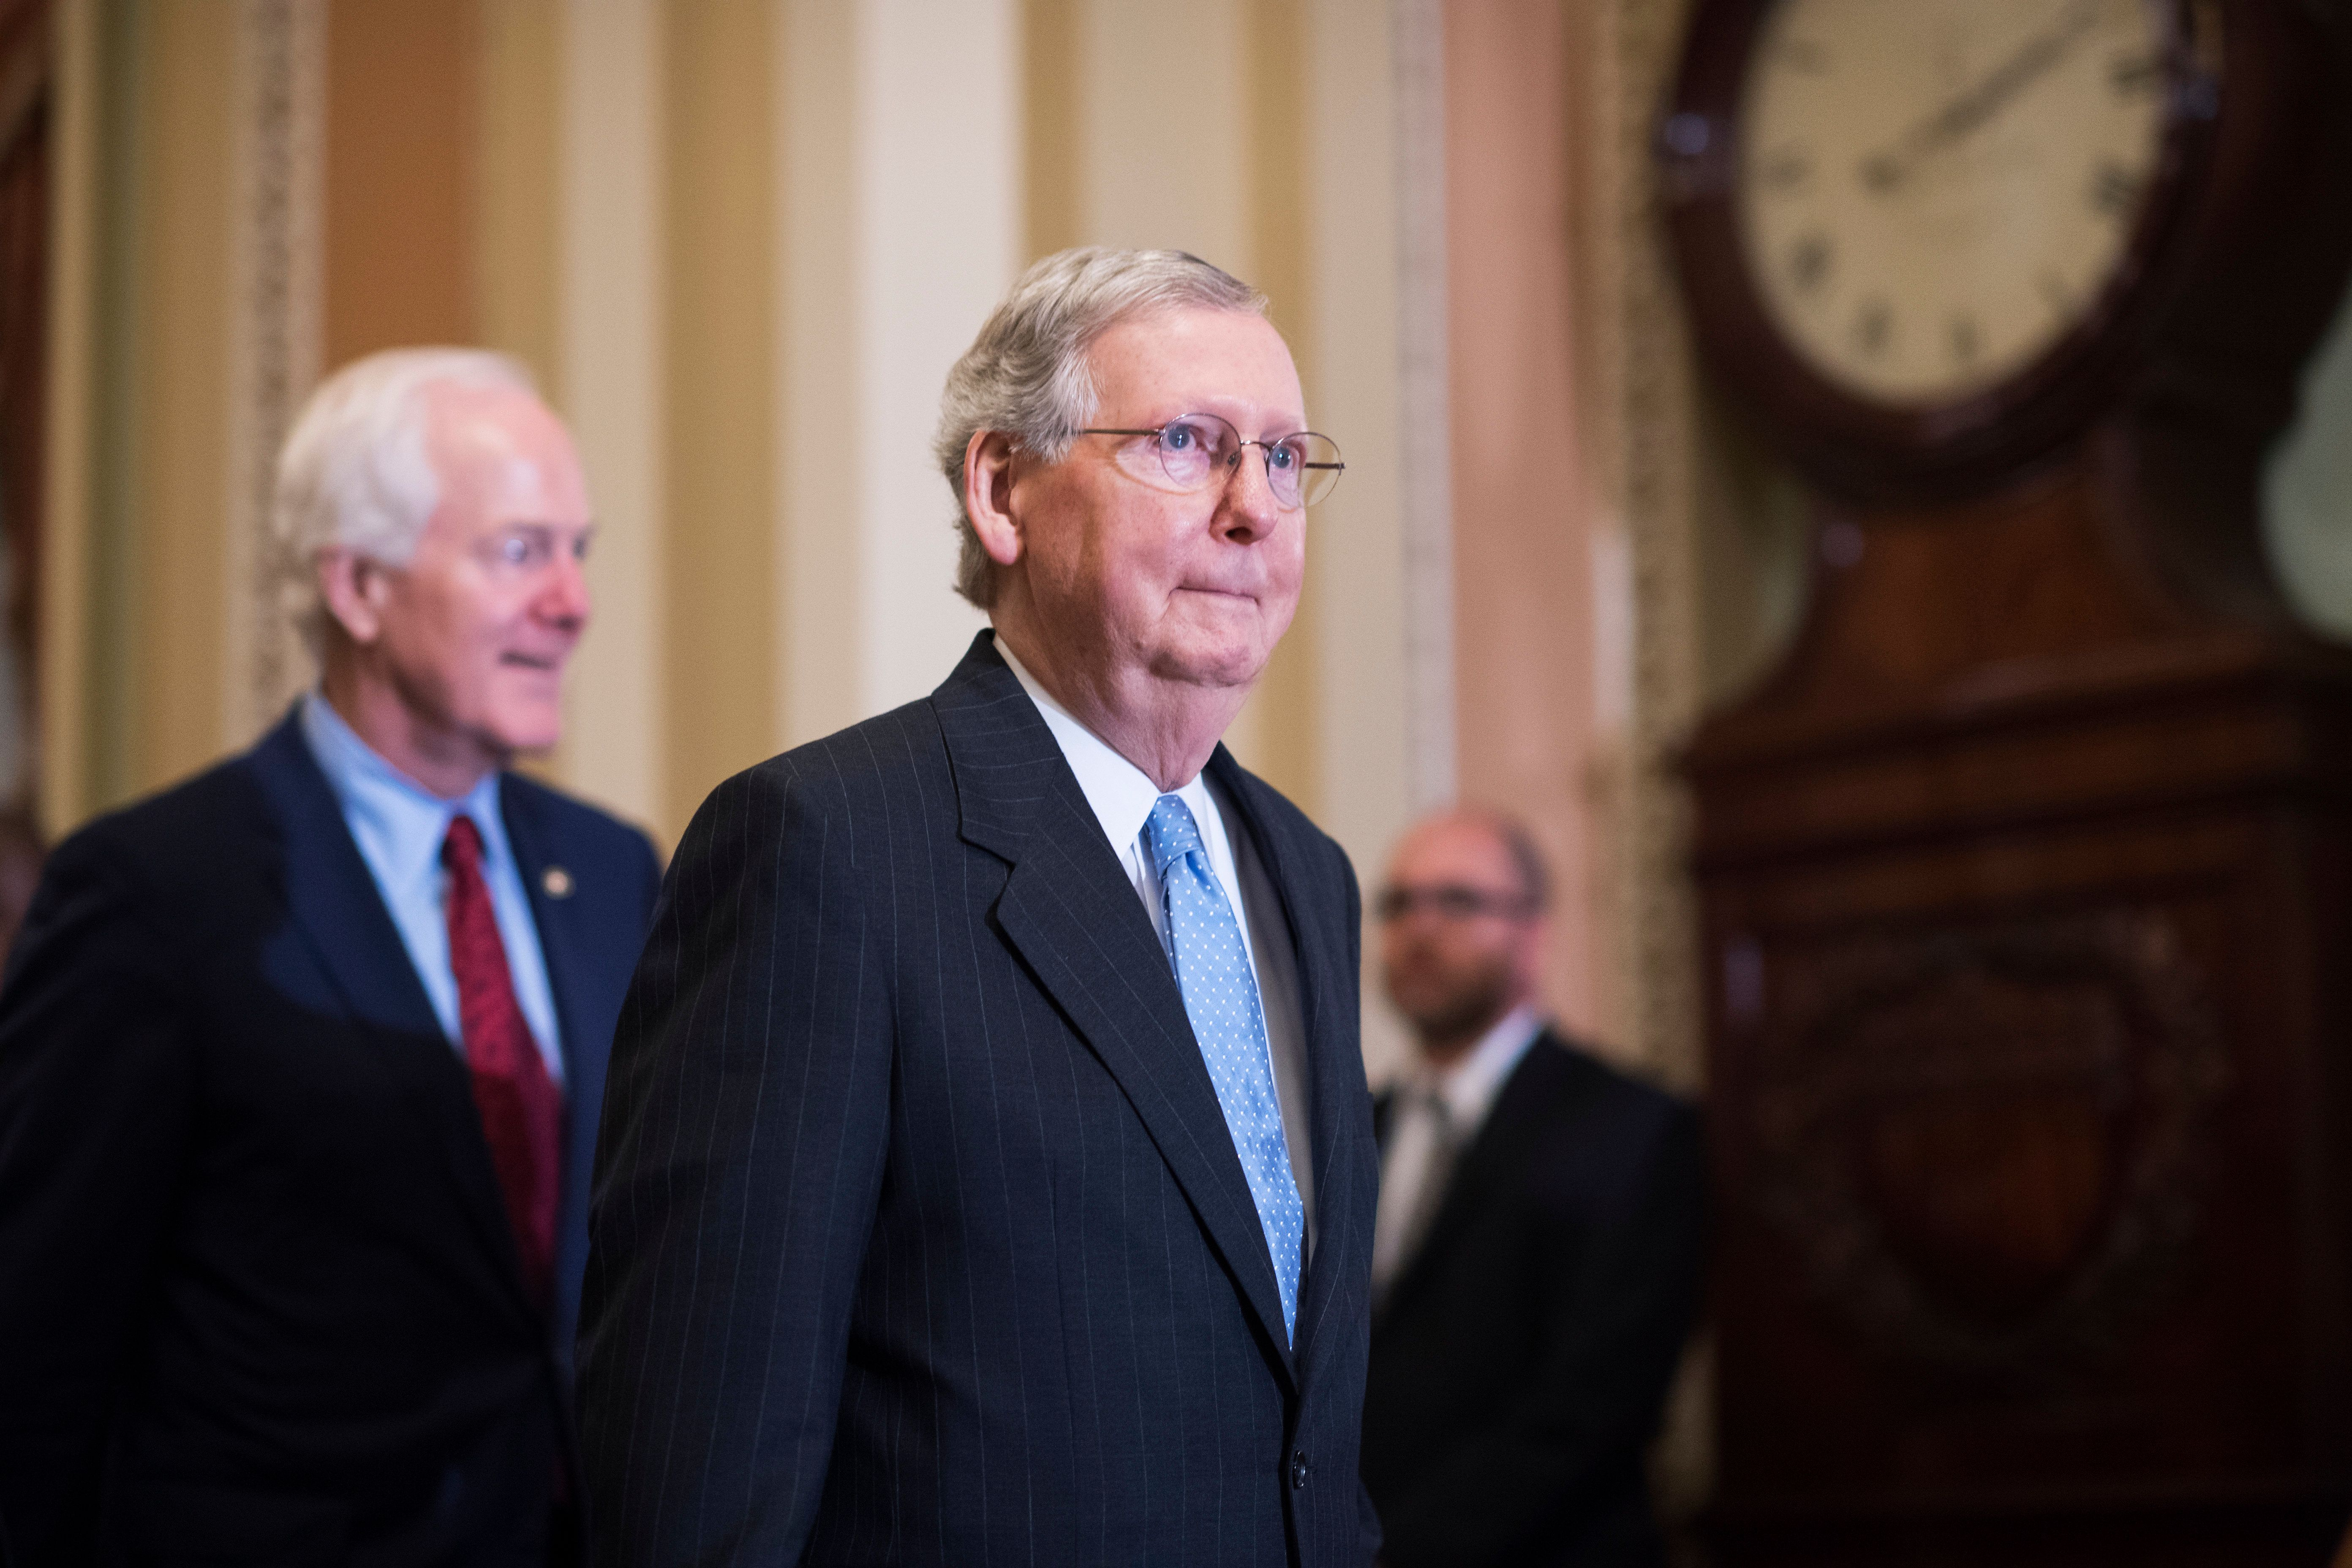 UNITED STATES - SEPTEMBER 13: Senate Majority Leader Mitch McConnell, R-Ky., right, and Senate Majority Whip John Cornyn, R-Texas, make their way to a news conference in the Capitol after the Senate Policy luncheons, September 13, 2016. (Photo By Tom Williams/CQ Roll Call)